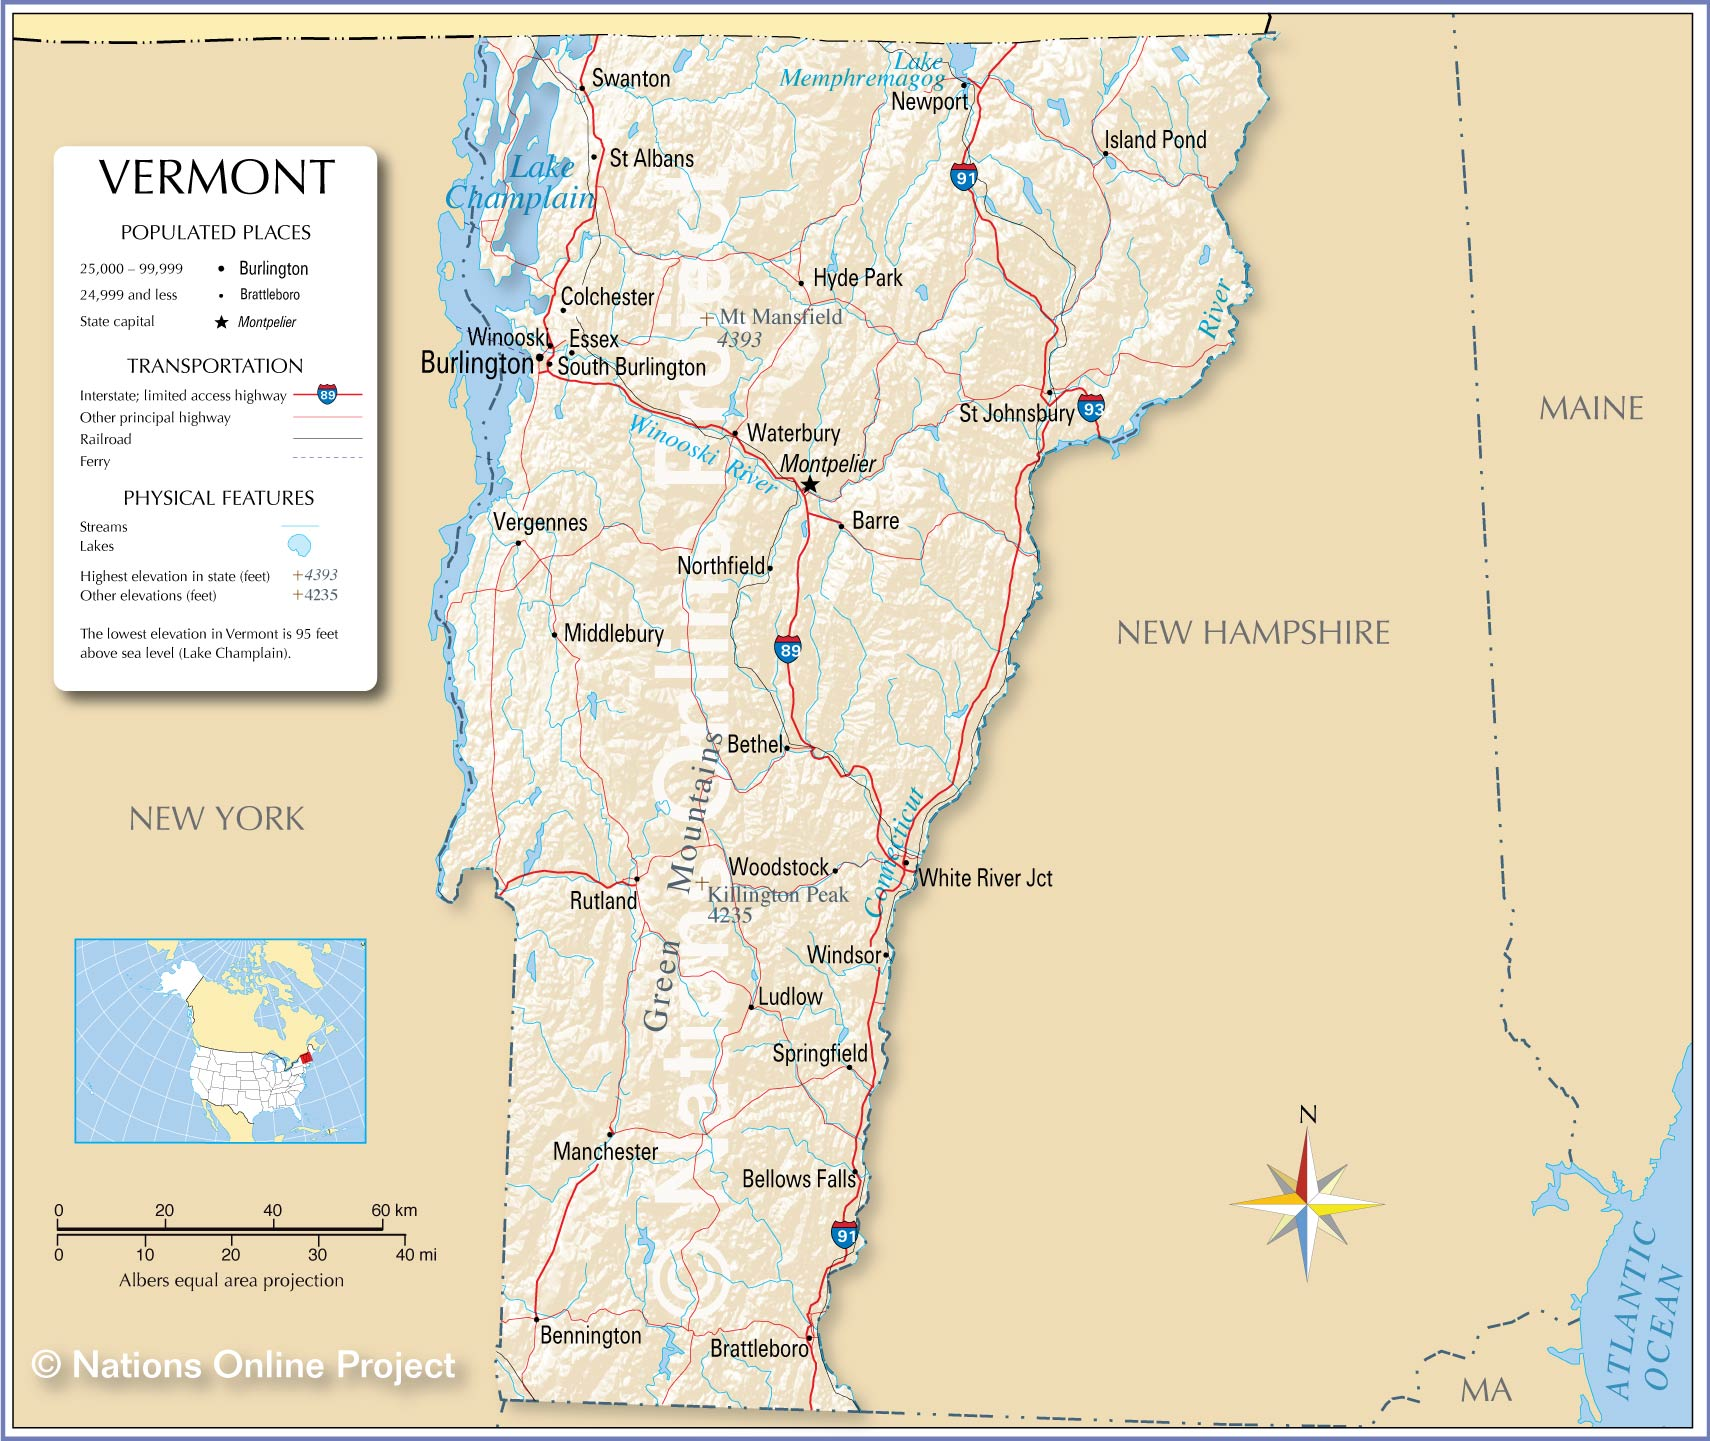 Reference Map Of Vermont USA Nations Online Project - Vermont in usa map